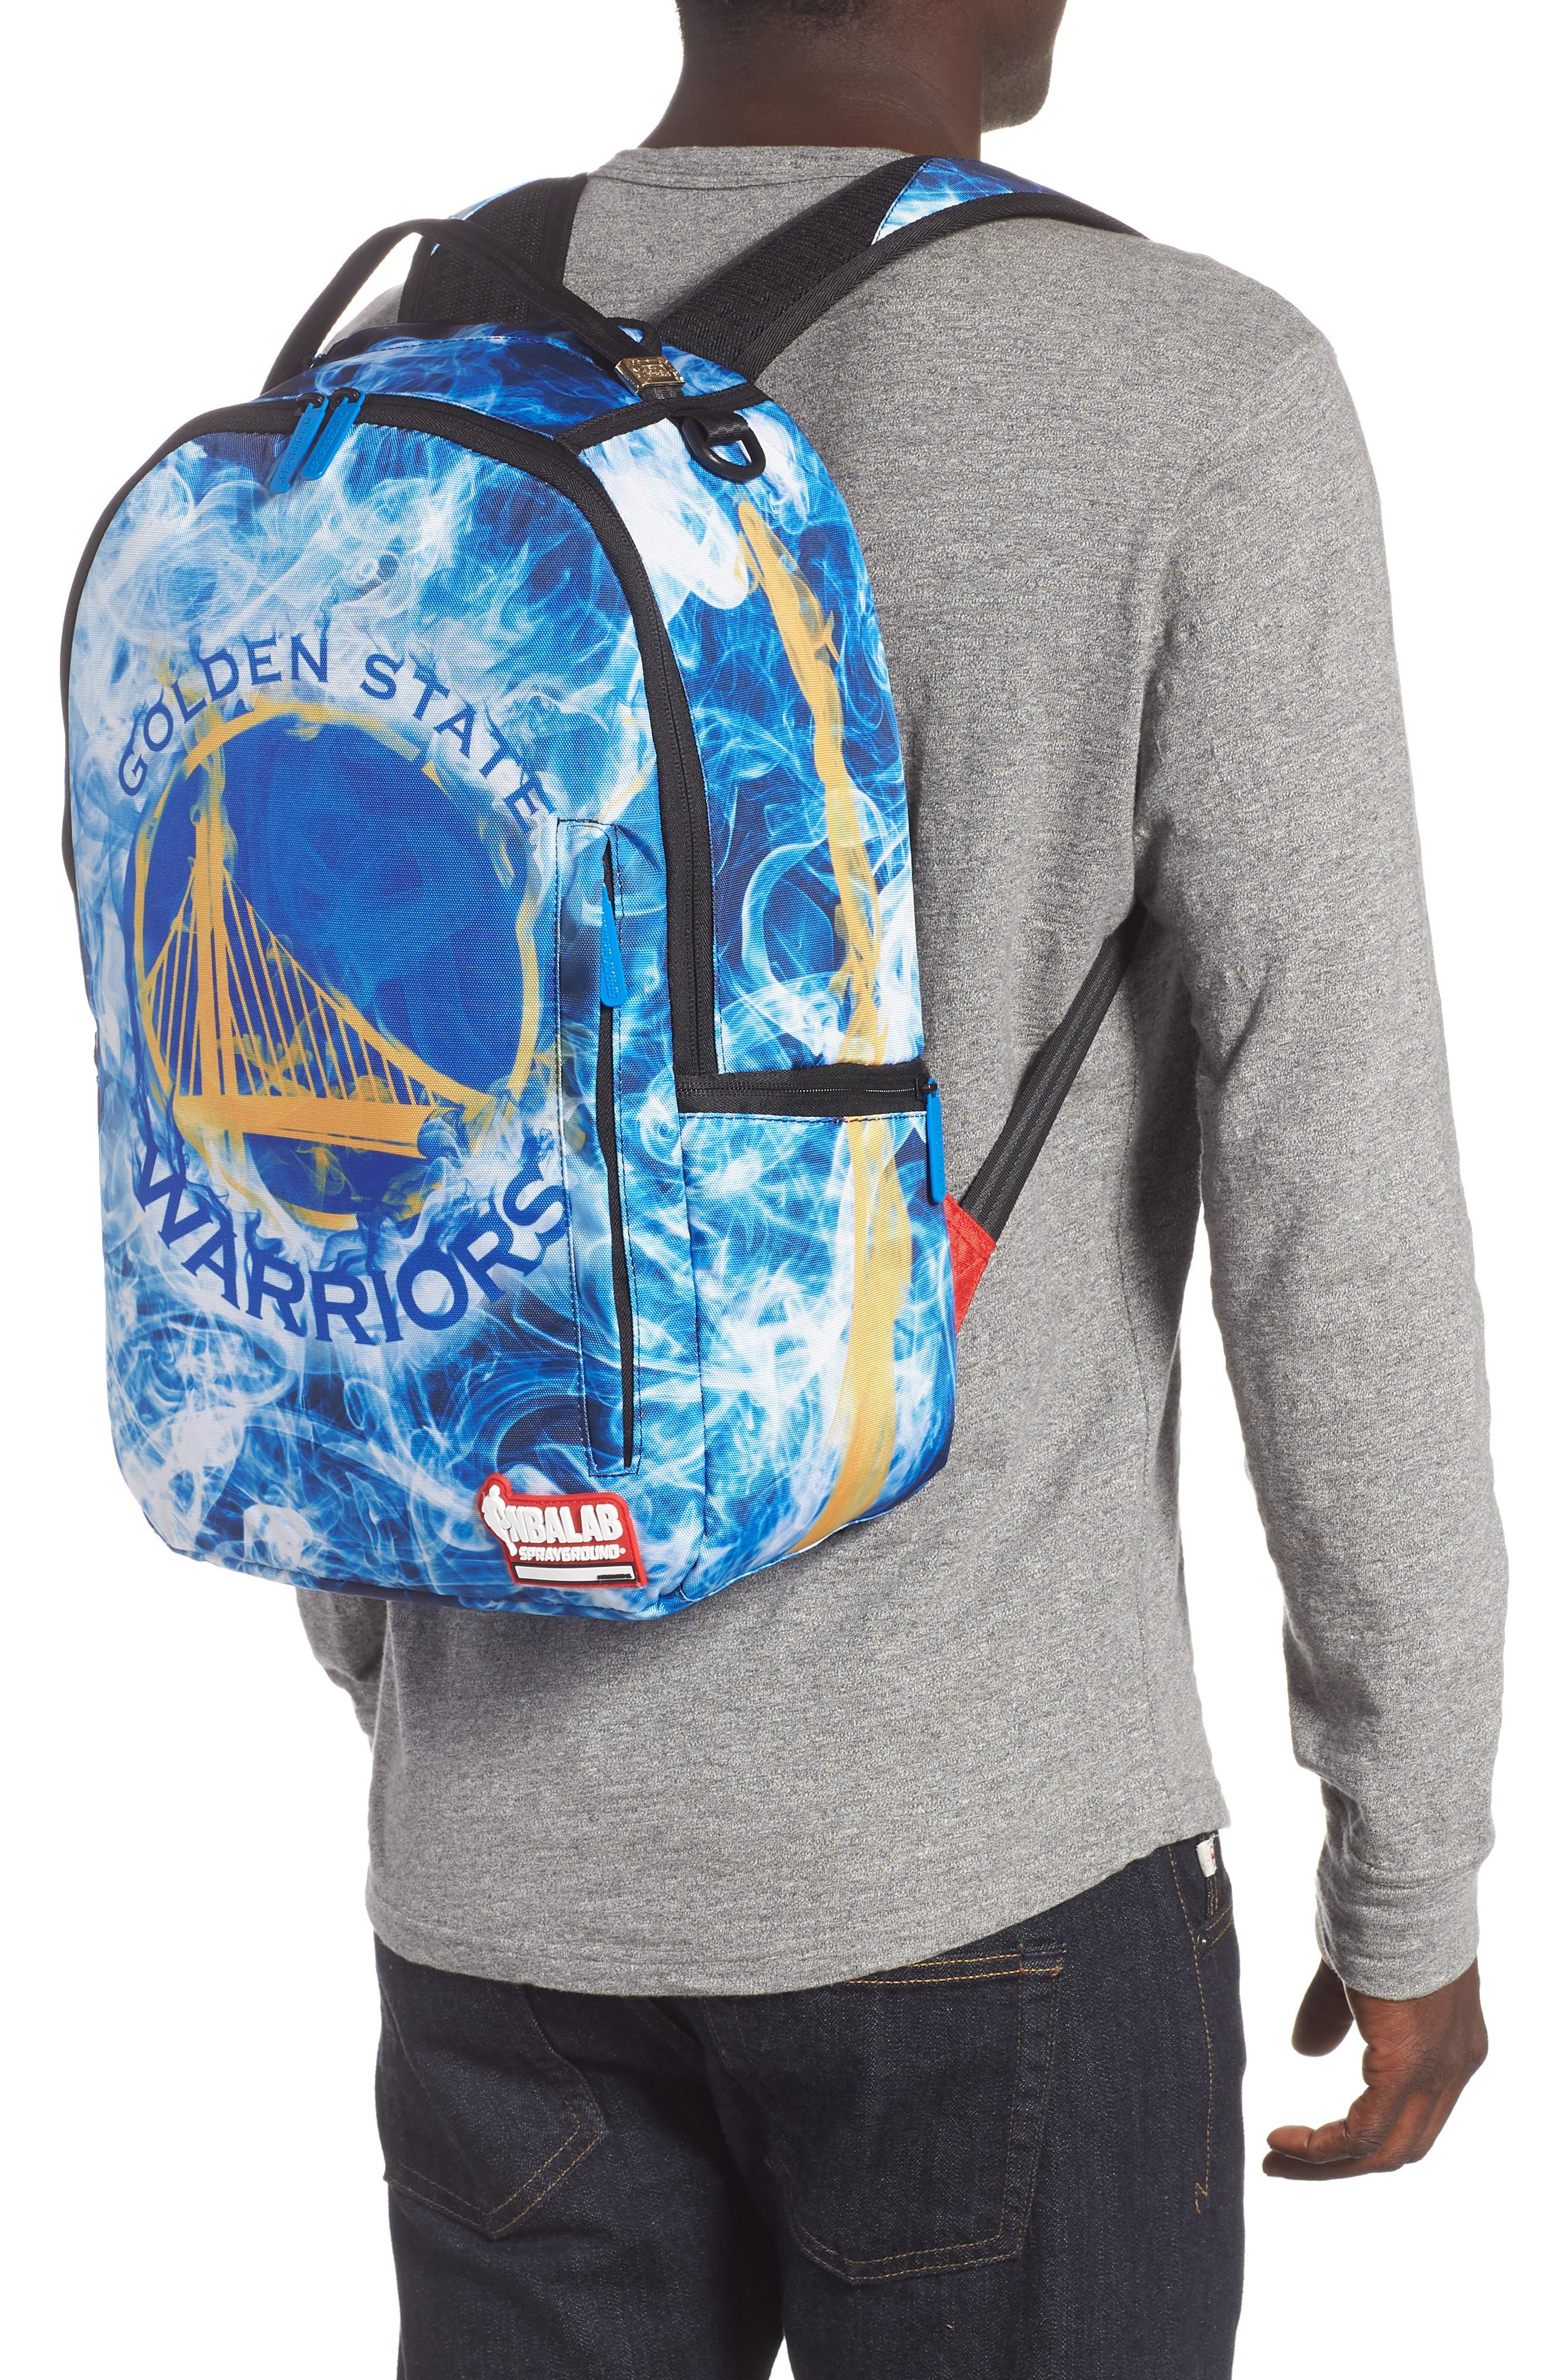 Golden State Smoke Backpack,                             Alternate thumbnail 2, color,                             BLUE